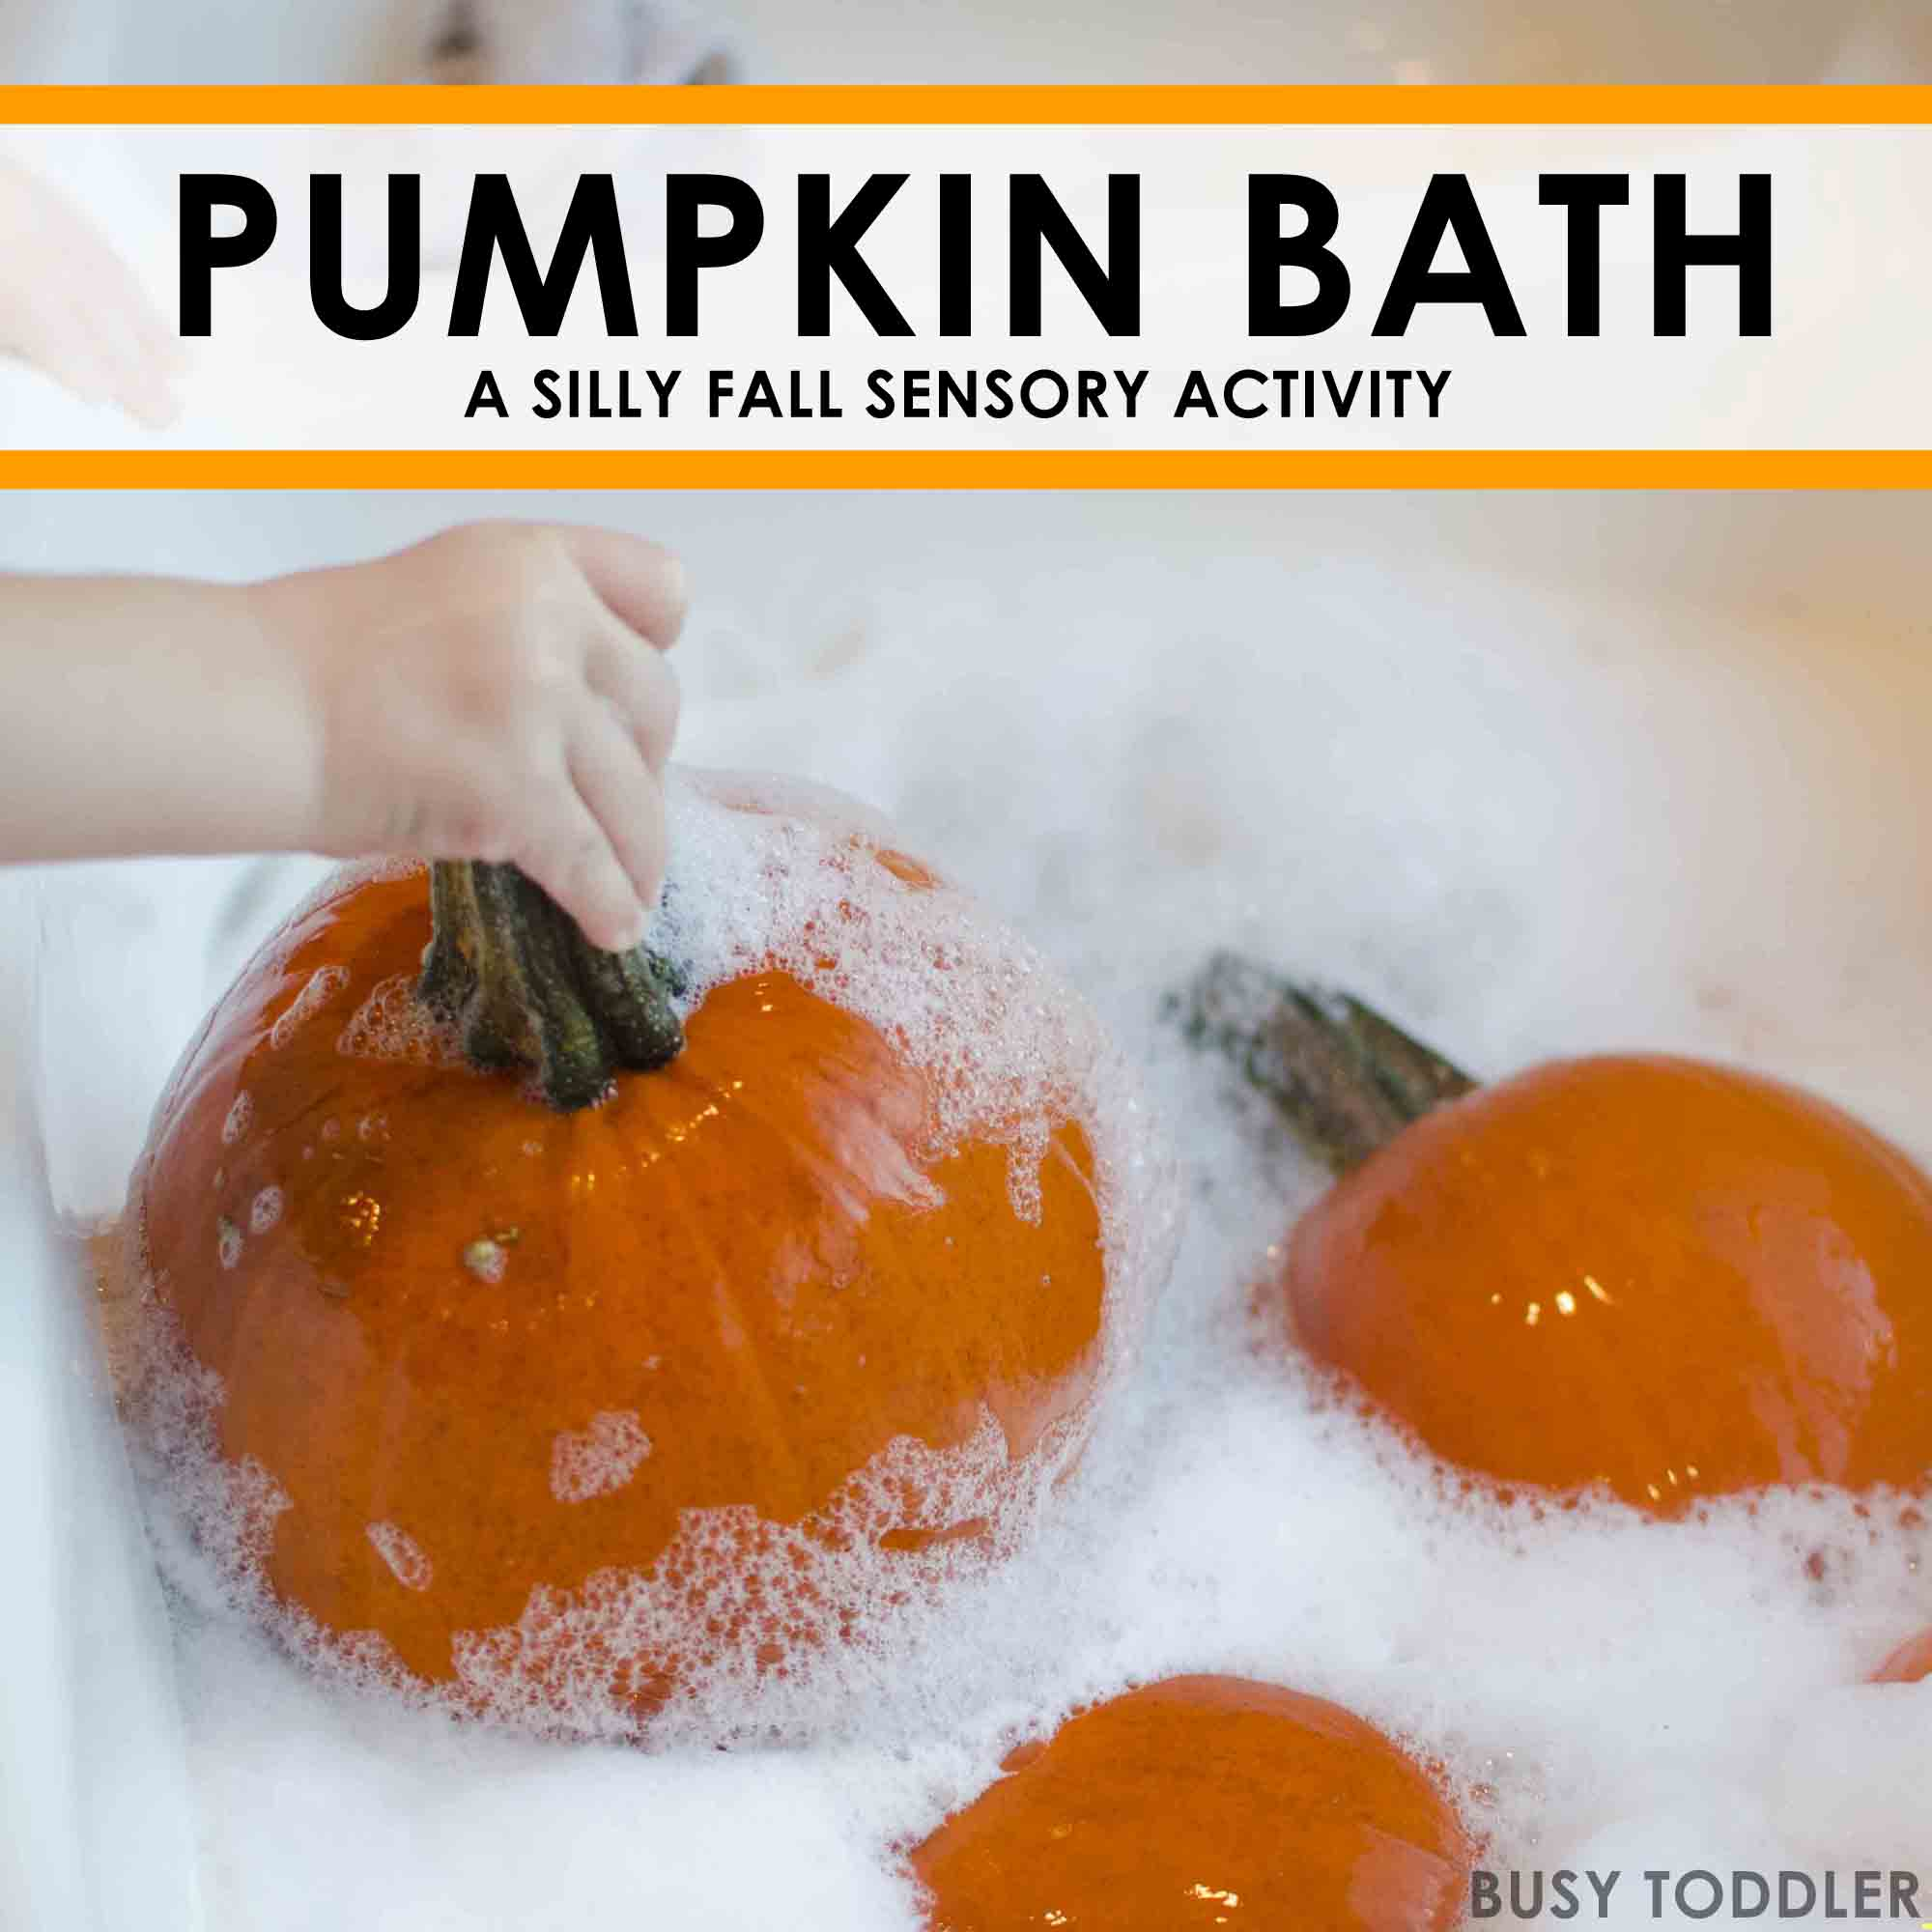 Pumpkin Bath